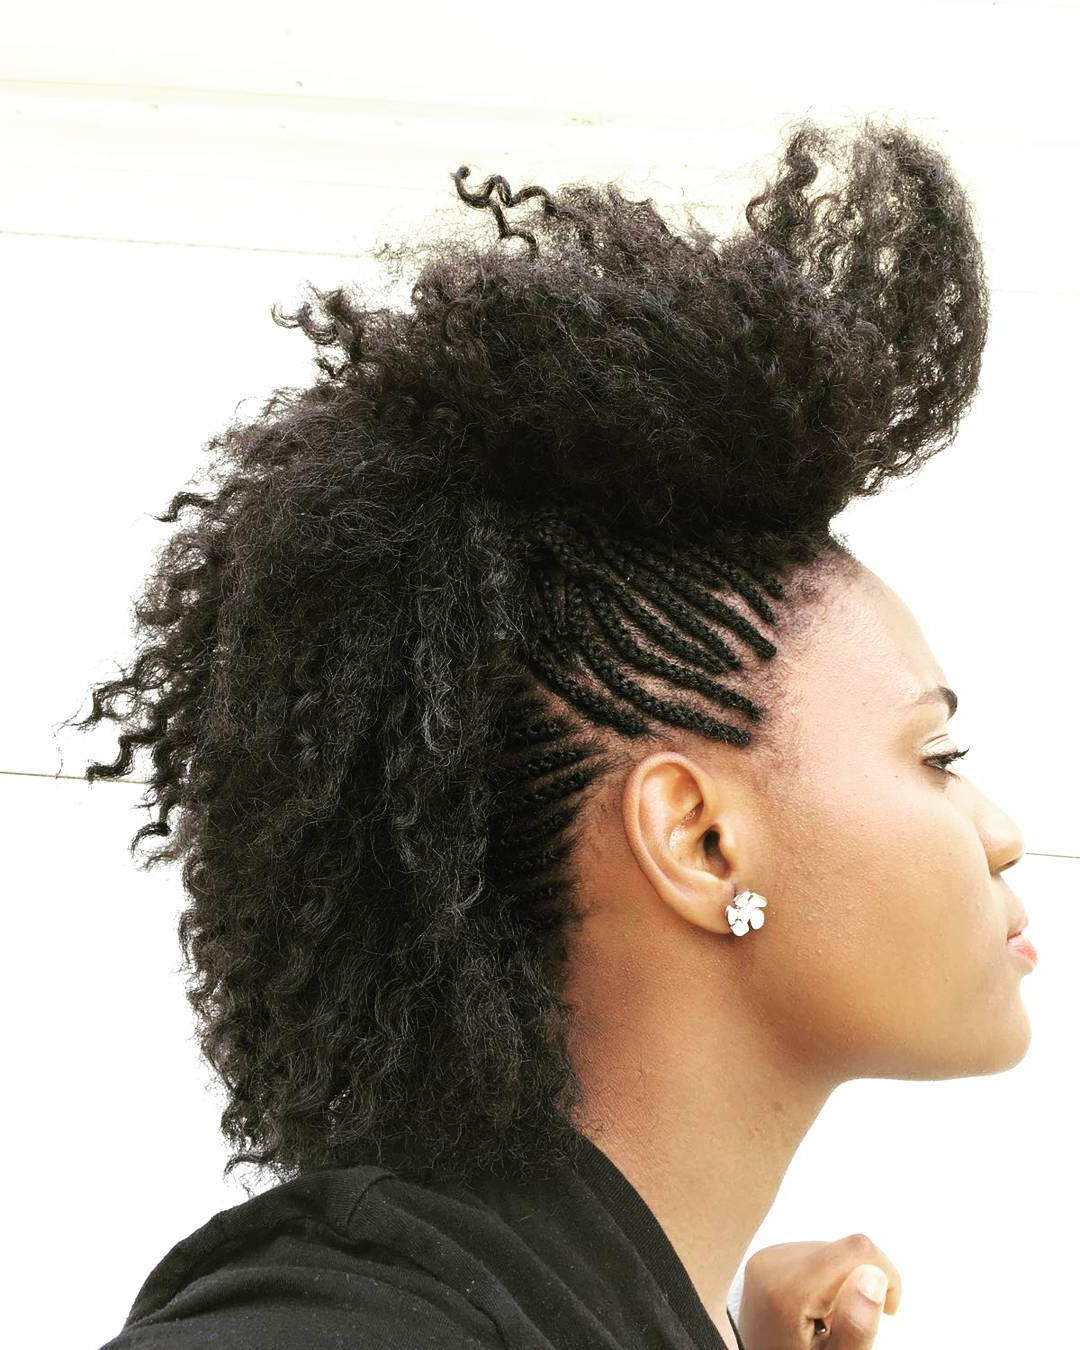 Mohawk Braids: 12 Braided Mohawk Hairstyles That Get Attention Regarding Latest Faux Mohawk Hairstyles With Natural Tresses (View 11 of 20)